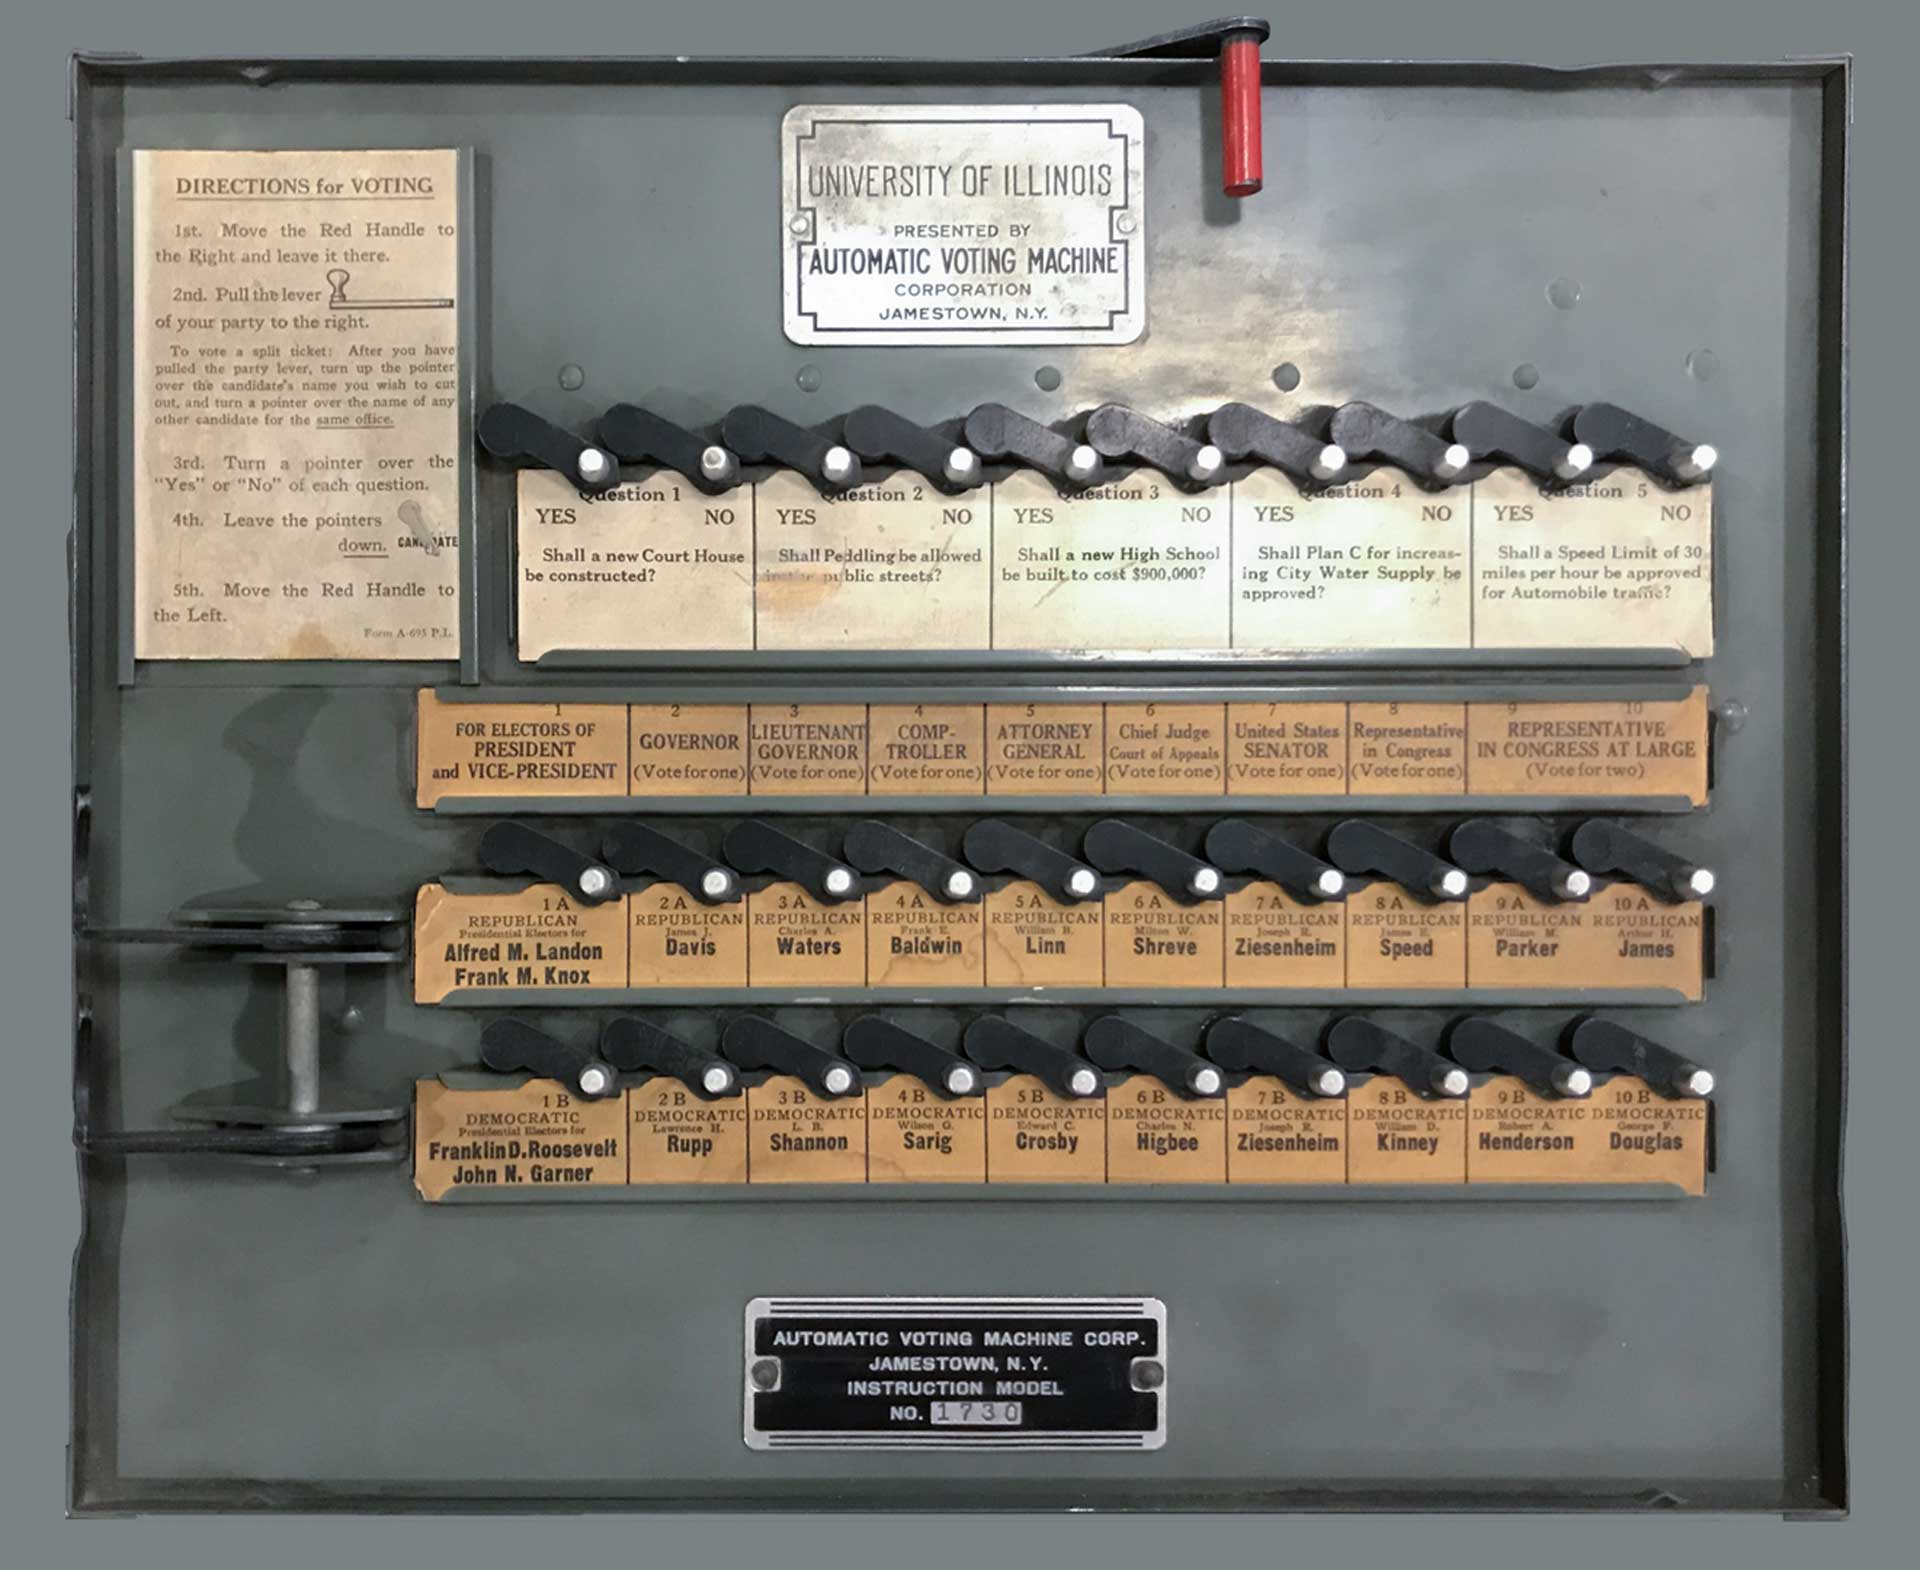 photo of an old mechanical voting machine with a University of Illinois plaque and visible referenda and candidates